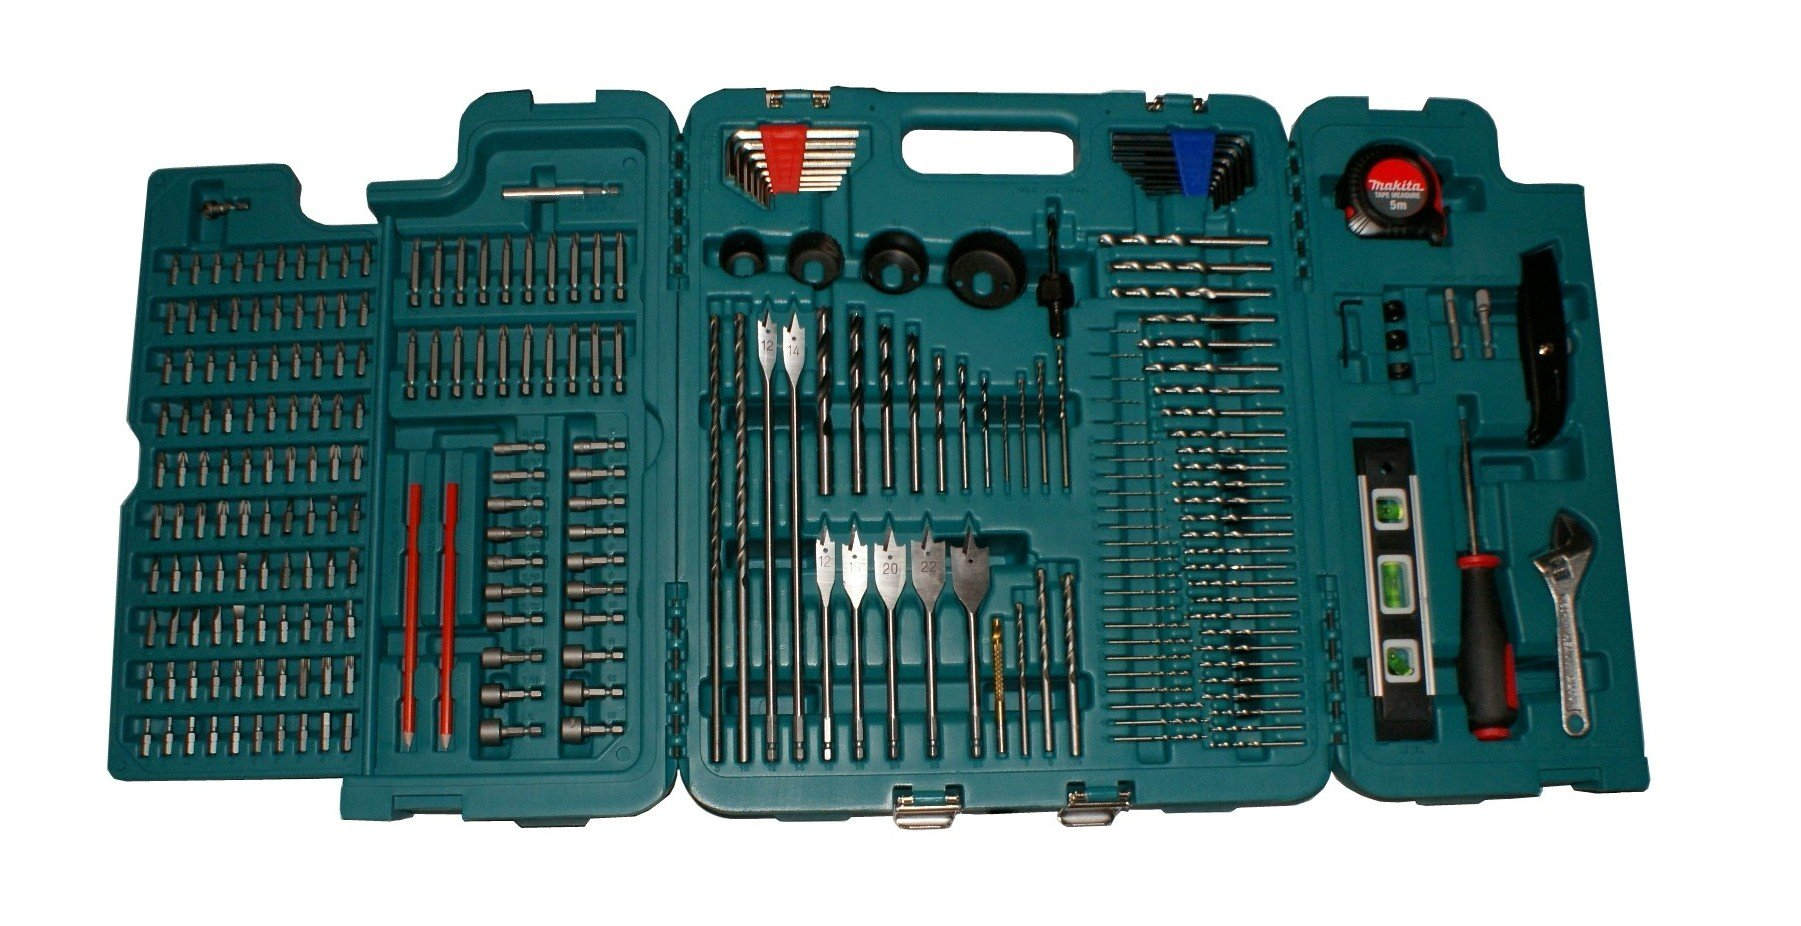 MAKITA 252 PIECE ACCESSORY KIT IN BLOW MOULDED CASE SCREWDRIVER, DRILLBITS GREAT FOR BUILDERS,TRADE,DIY by Makita (Image #2)